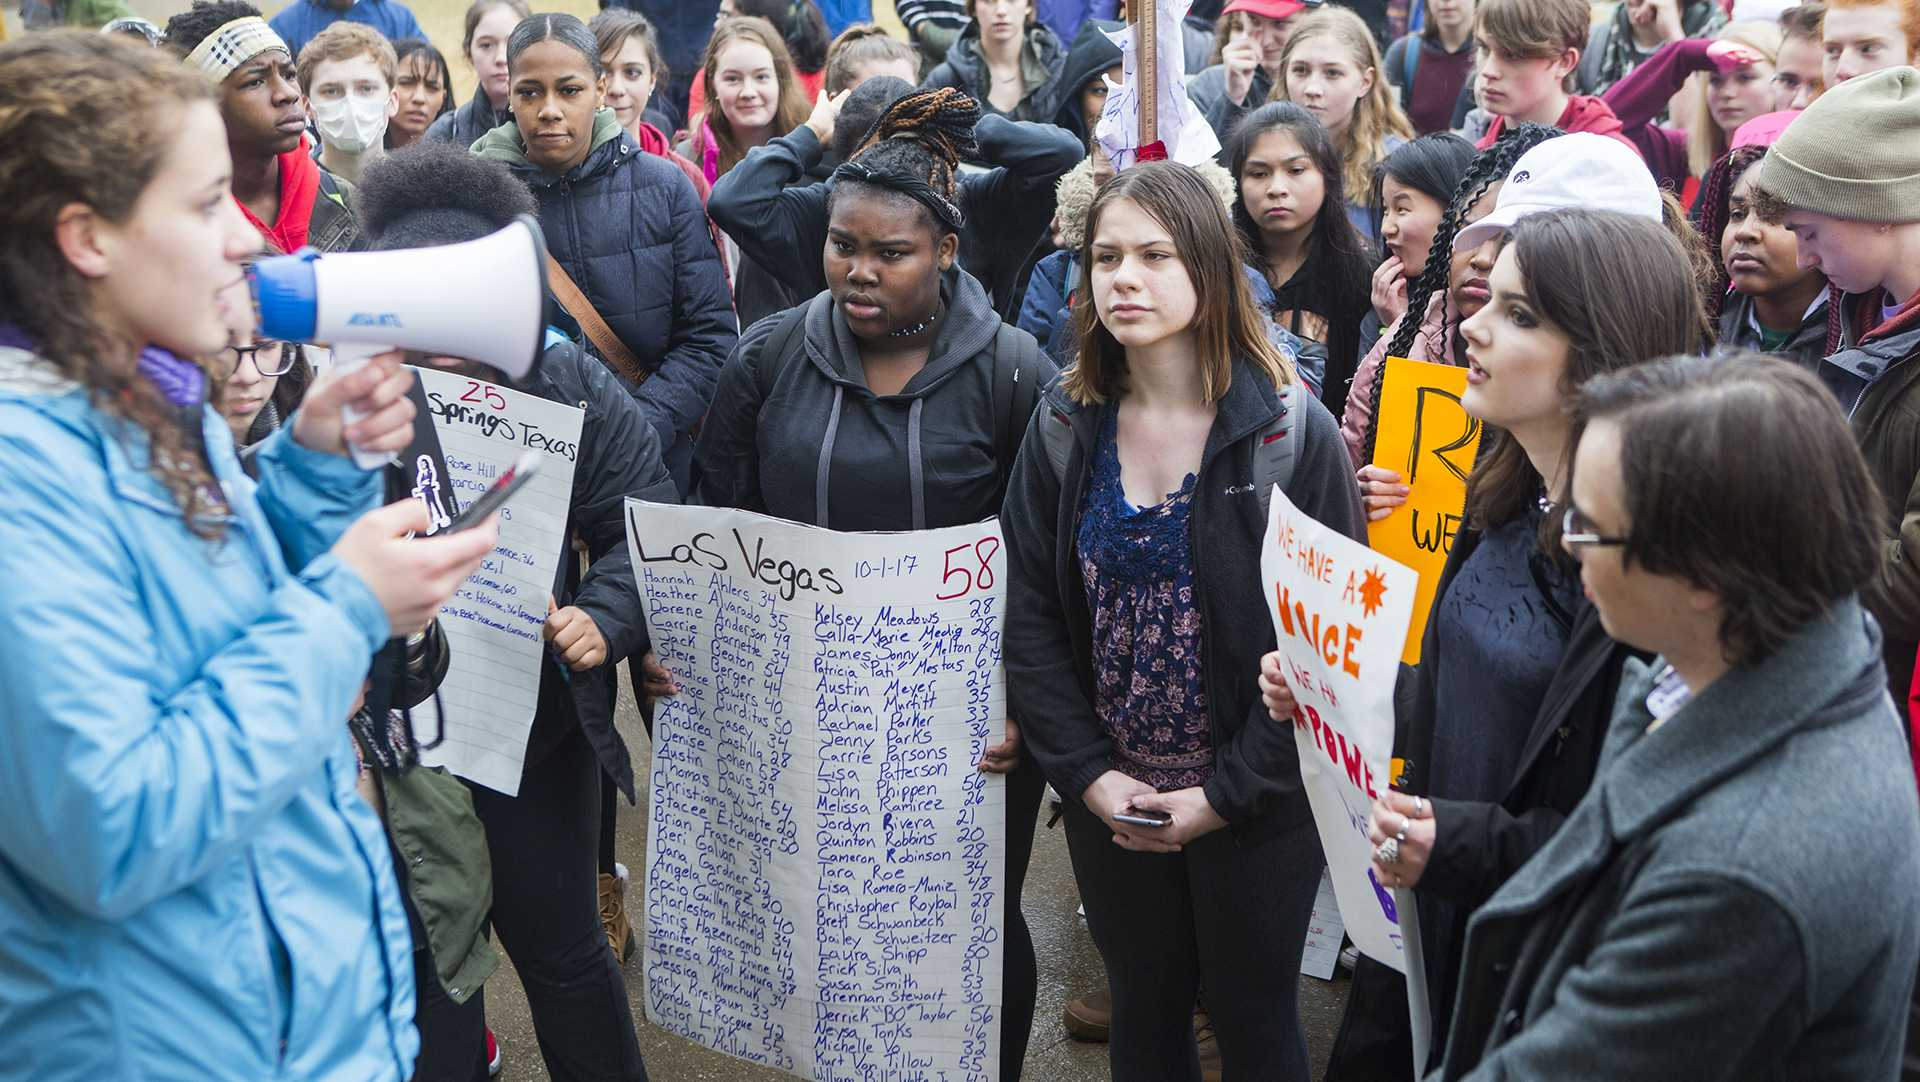 Iowa City High School and Southest Junior High School students protest on the Pentacrest on Monday, Feb. 19, 2018. The protest was sparked after news of another school shooting, at Marjory Stoneman Douglas High School, in Parkland, FL on, Feb. 14. (Lily Smith/The Daily Iowan)